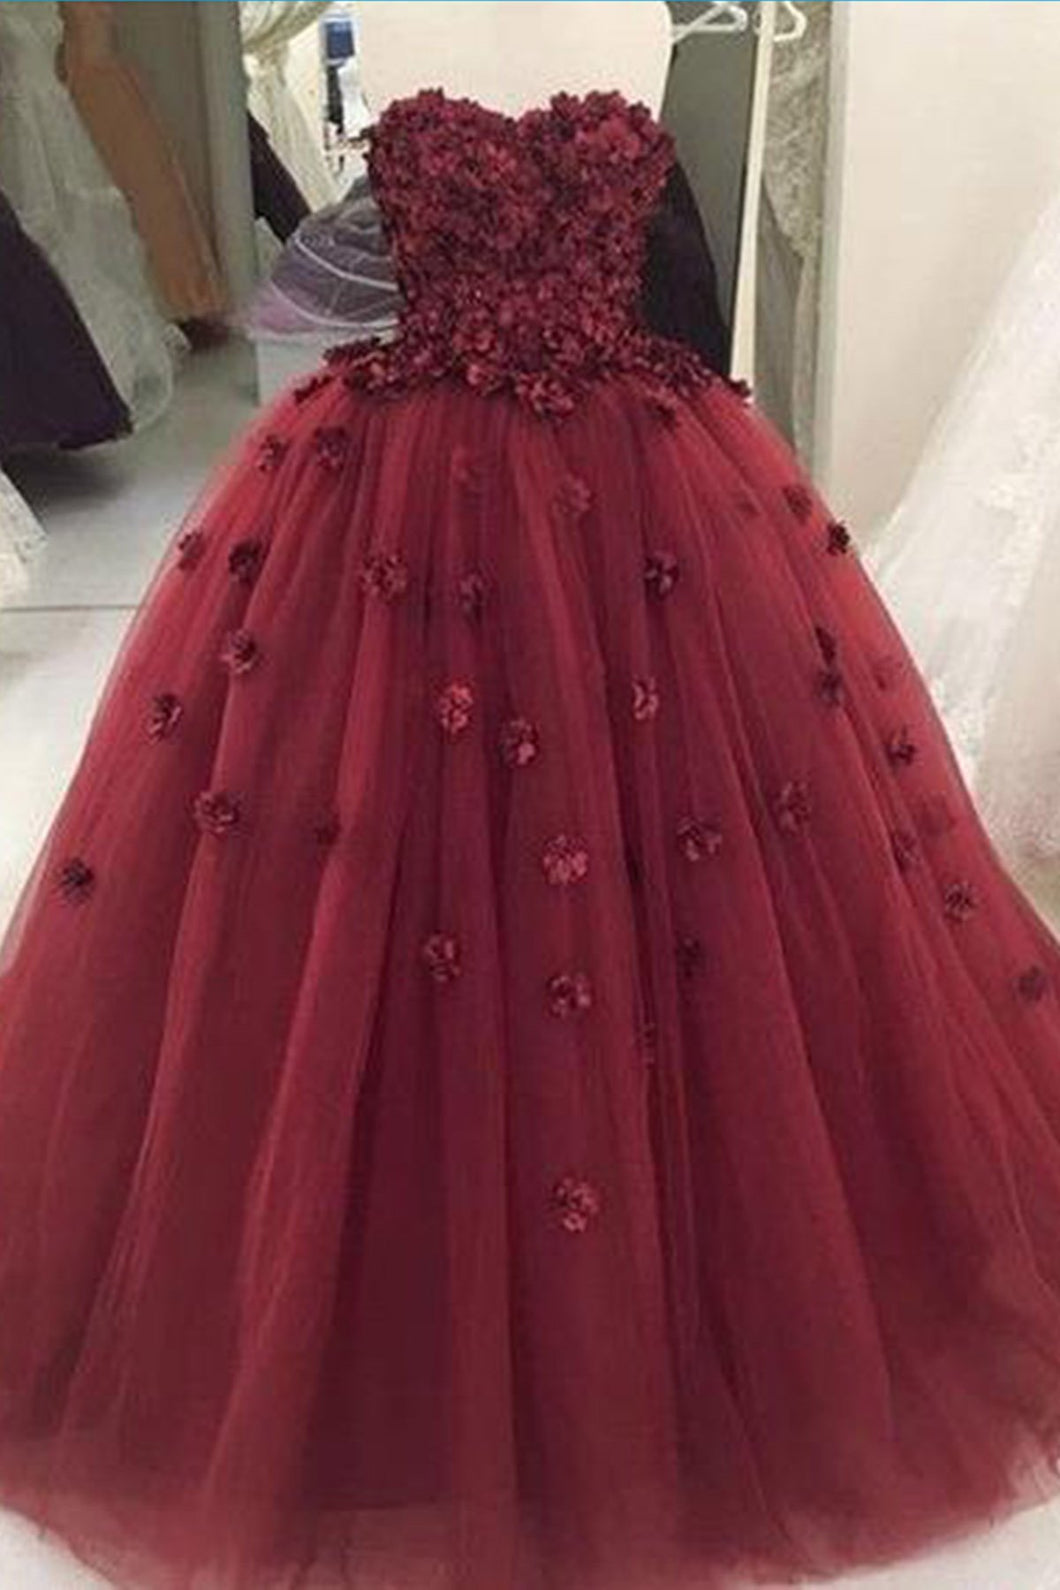 2019 Prom Dresses | Burgundy tulle sweetheart neck long 3D lace appliqué ball gown, long tulle evening dress